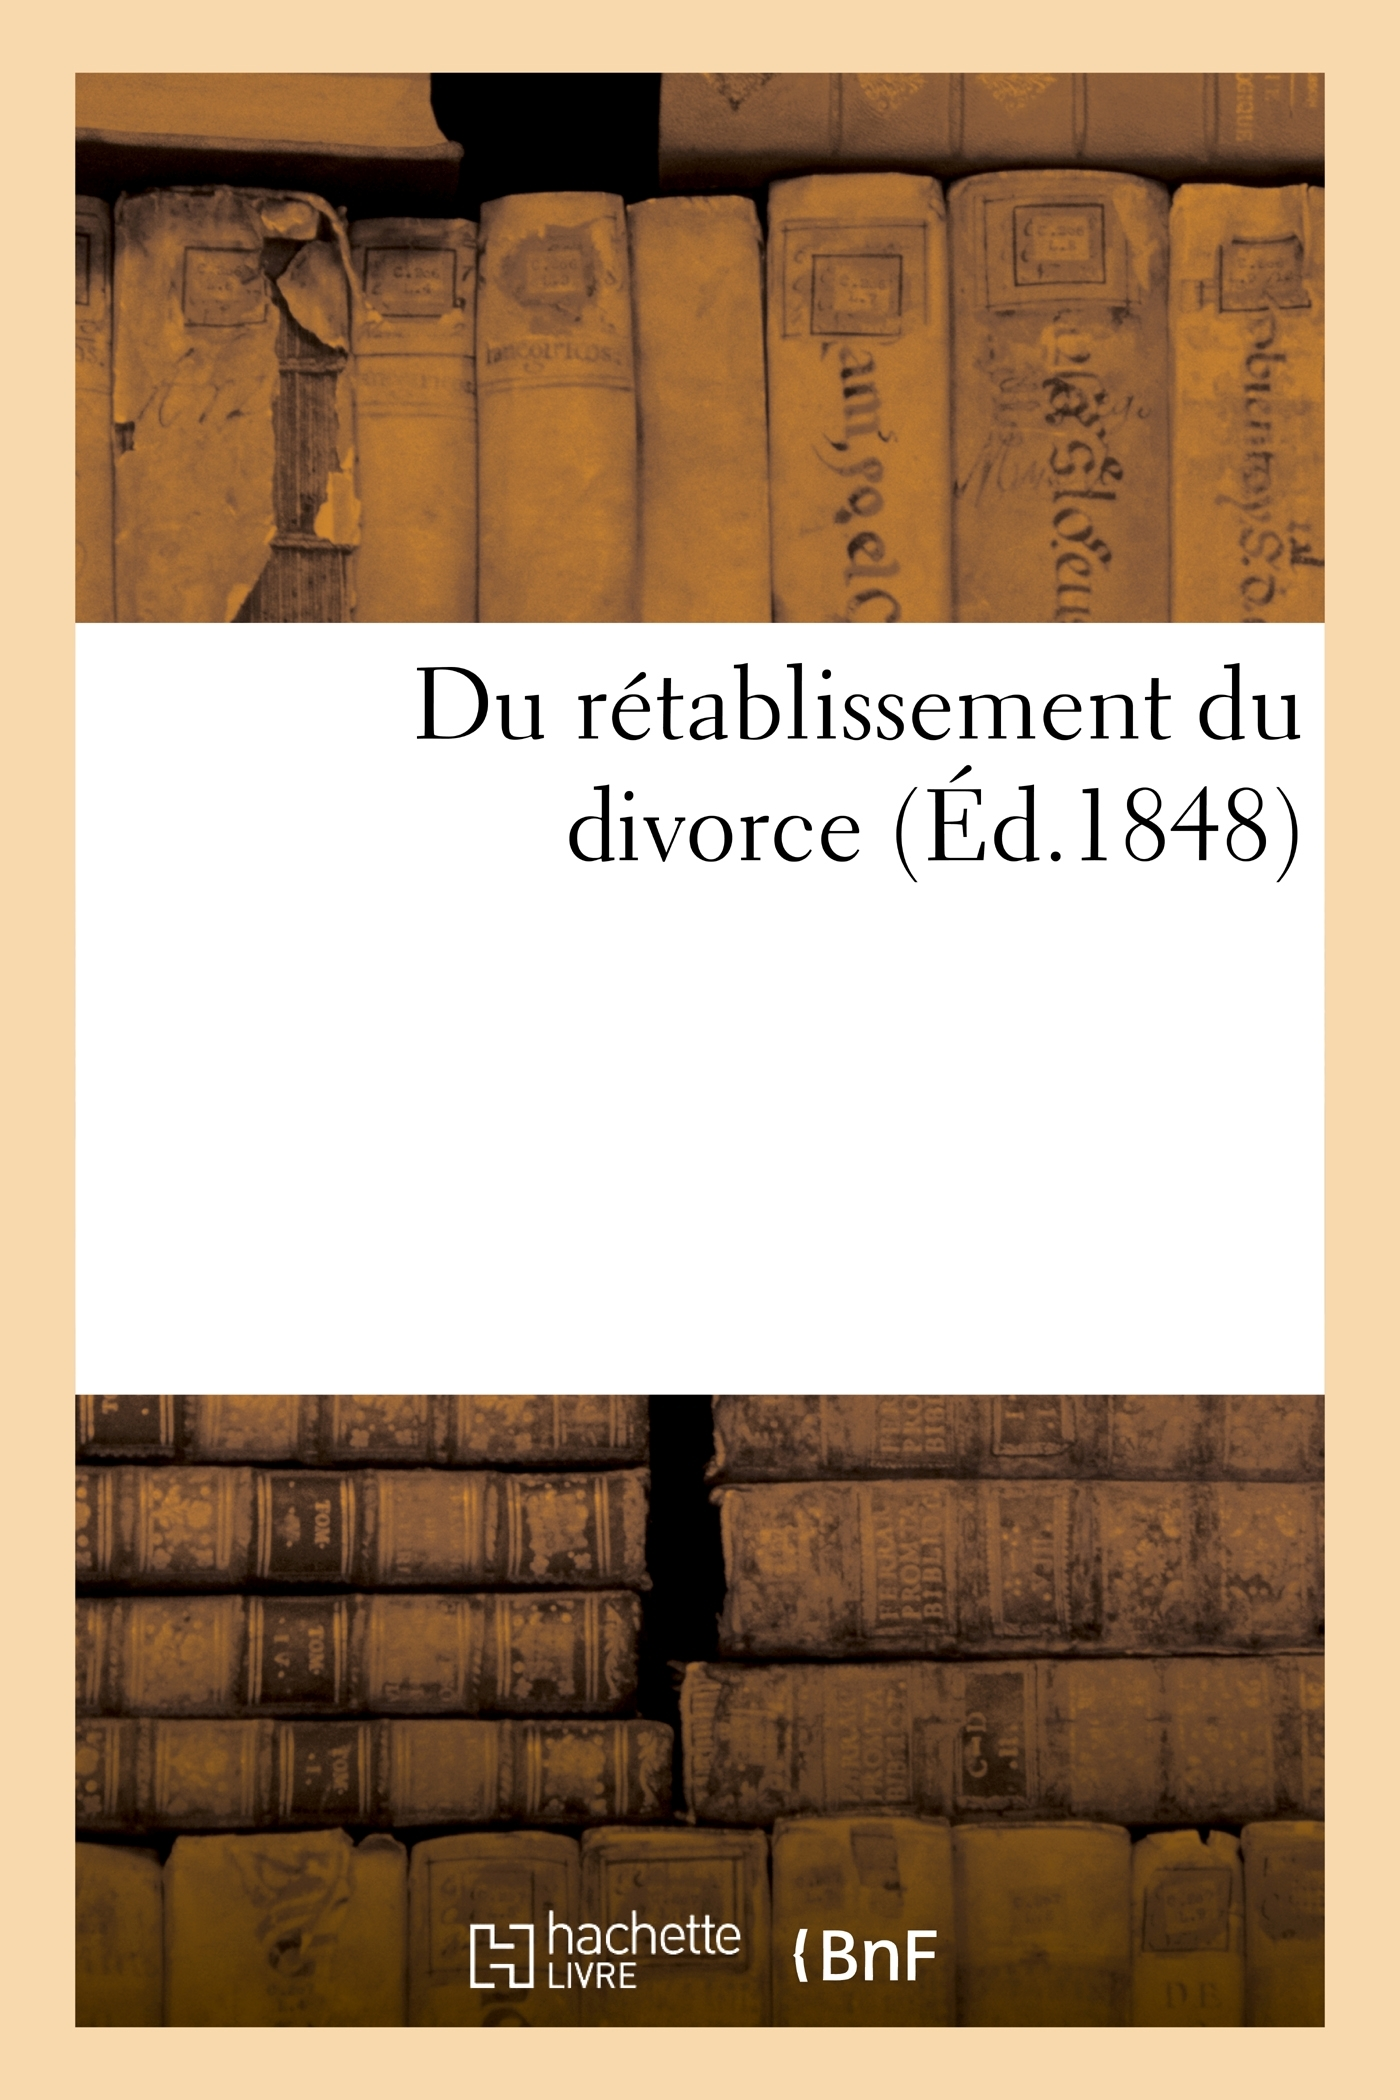 DU RETABLISSEMENT DU DIVORCE